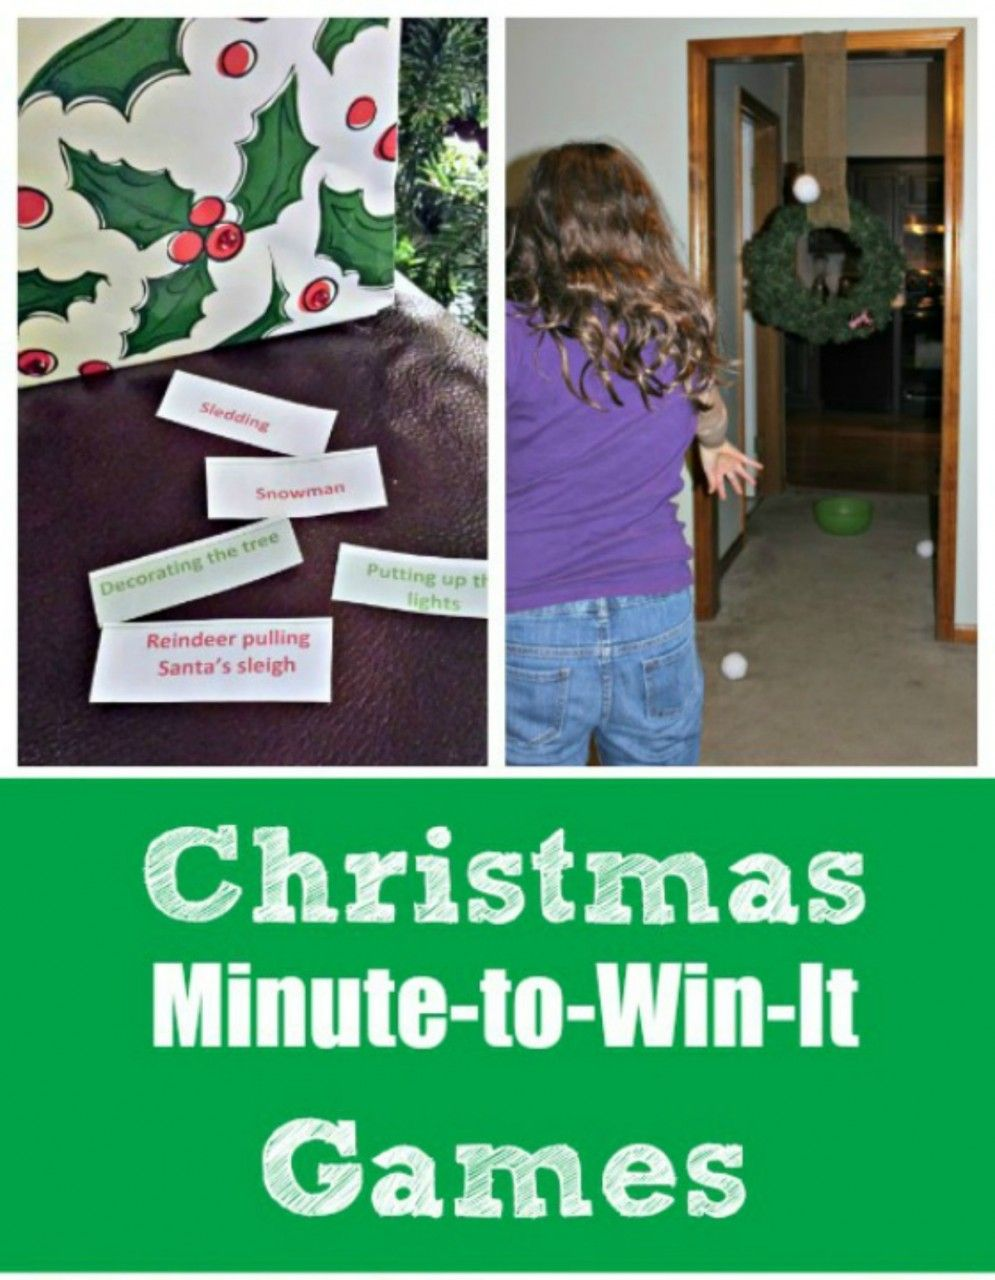 Indoor Winter Games for Kids Holiday Charades or